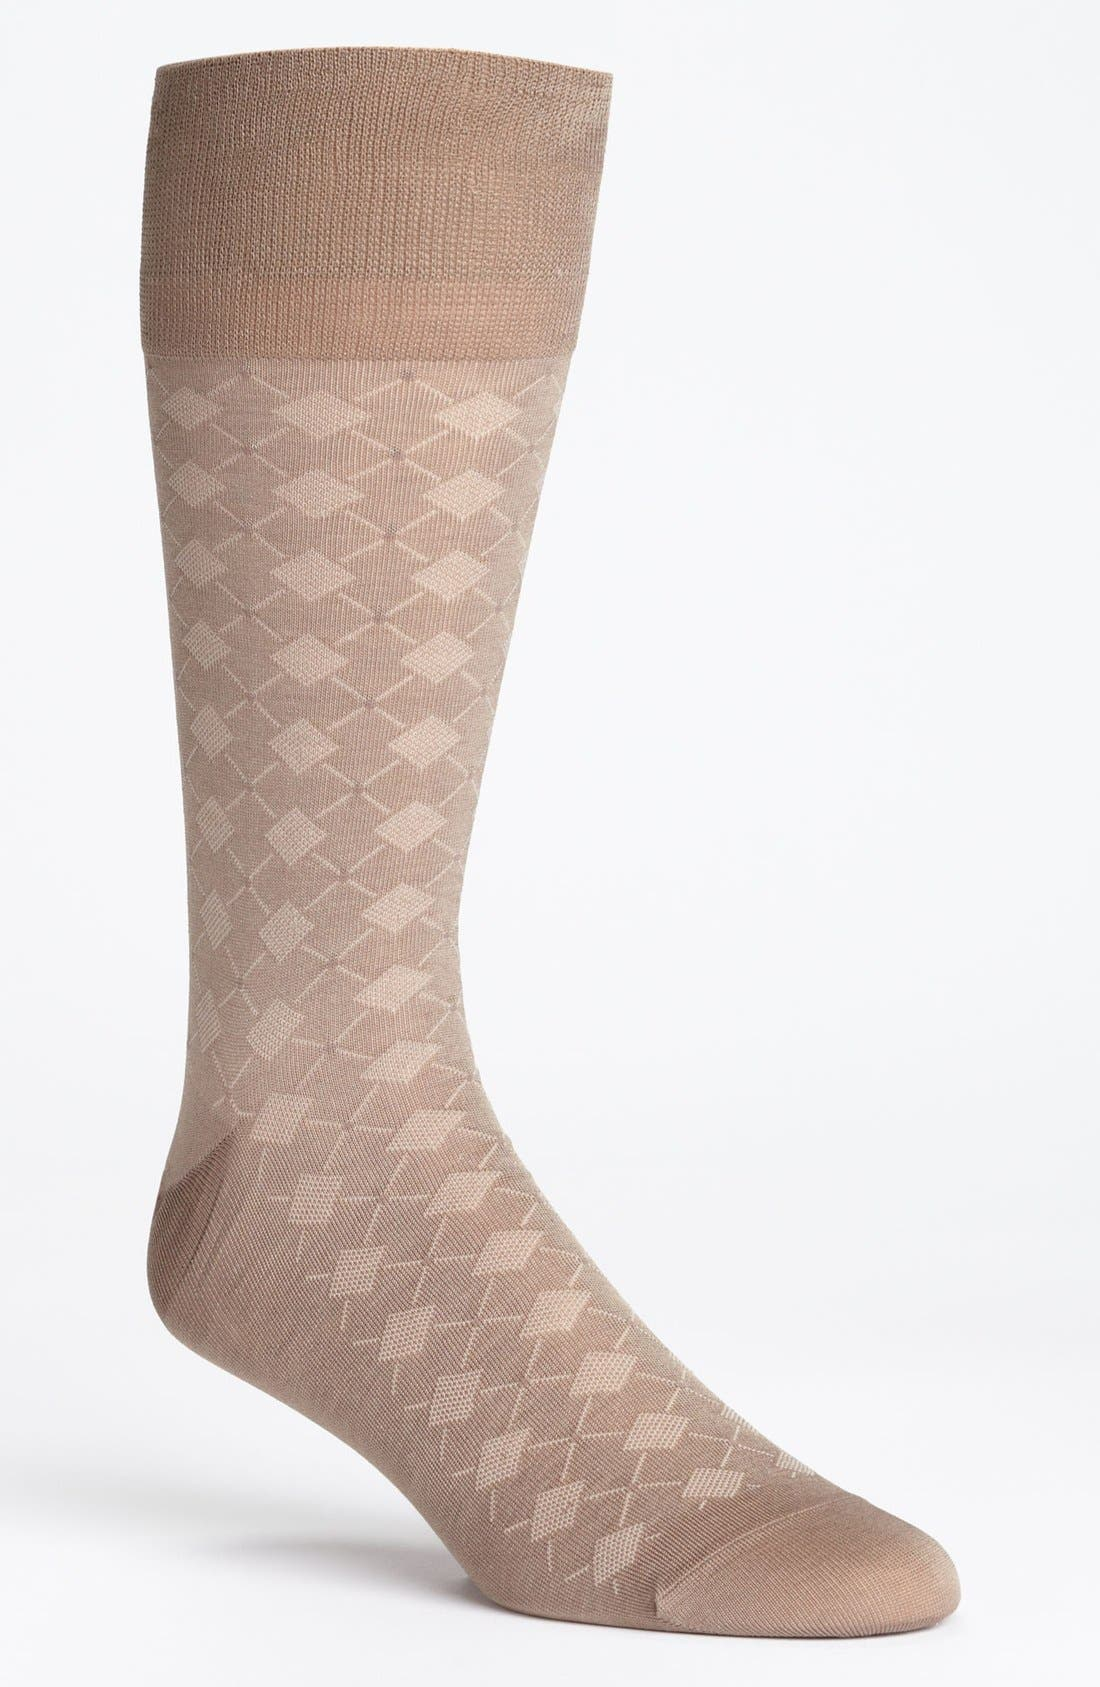 Alternate Image 1 Selected - John W. Nordstrom® Diamond Pattern Socks